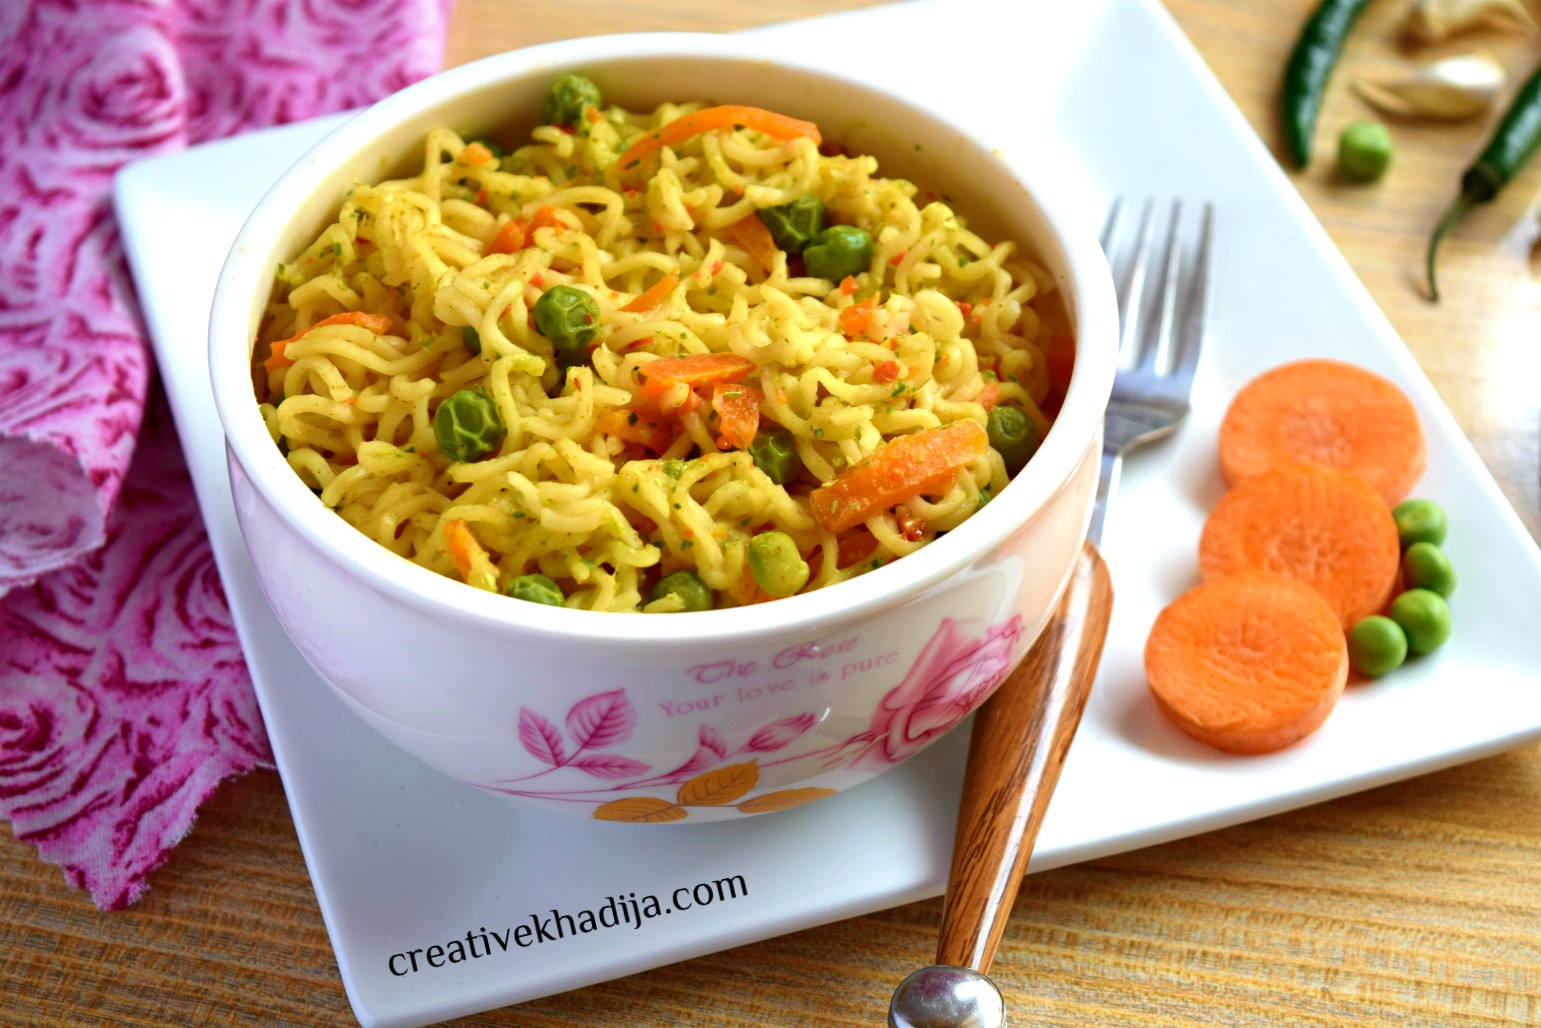 How To Make Noodles by Available Vegetables at Home